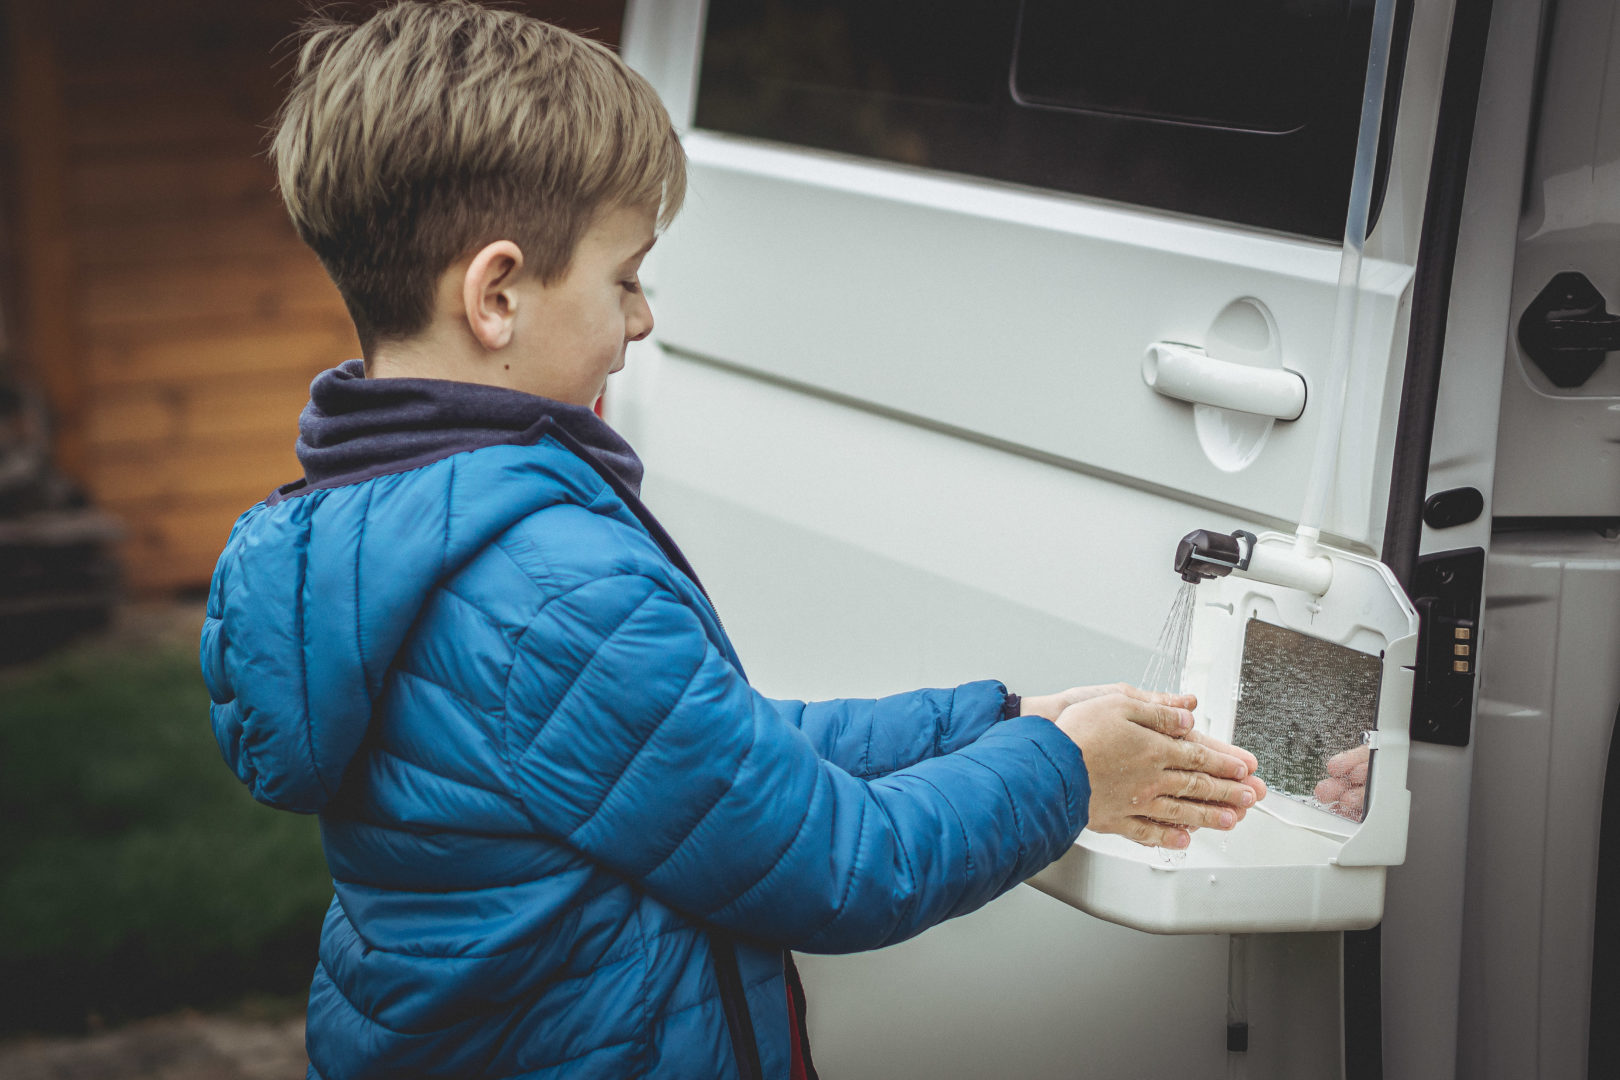 Camp Tap - Most mobile Tap & Sink for children